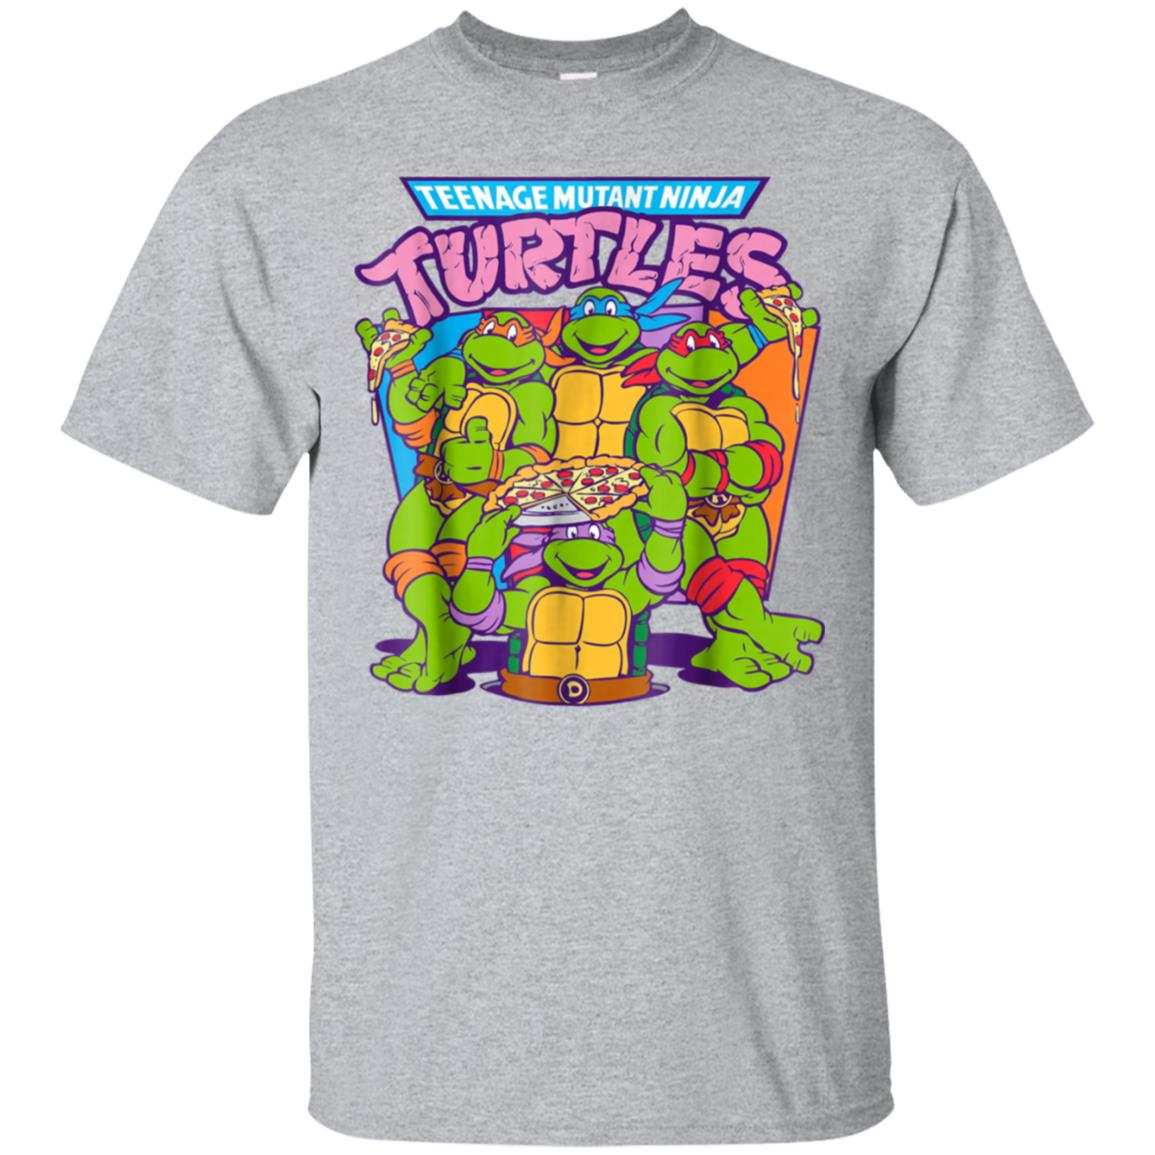 Teenage Mutant Ninja Turtles Pizza & Smiles T-Shirt 99promocode